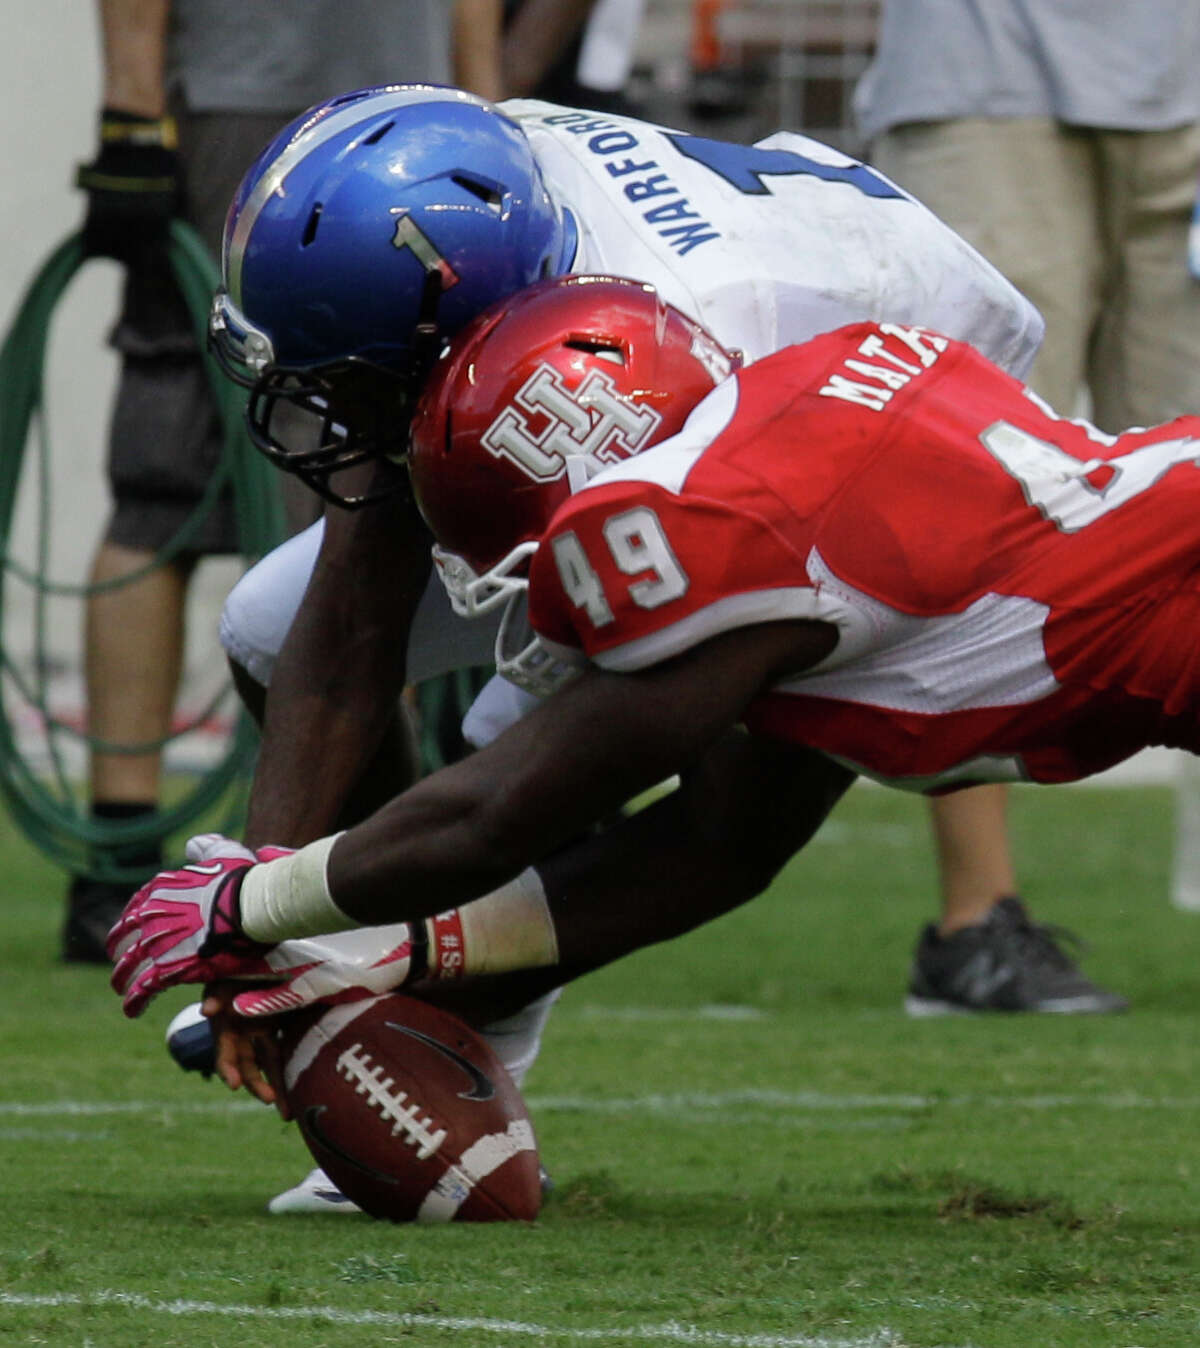 UH's Derrick Mathews recovers a fumble by Memphis' Marquis Warford, one of four turnovers forced by the Cougars' defense Saturday.